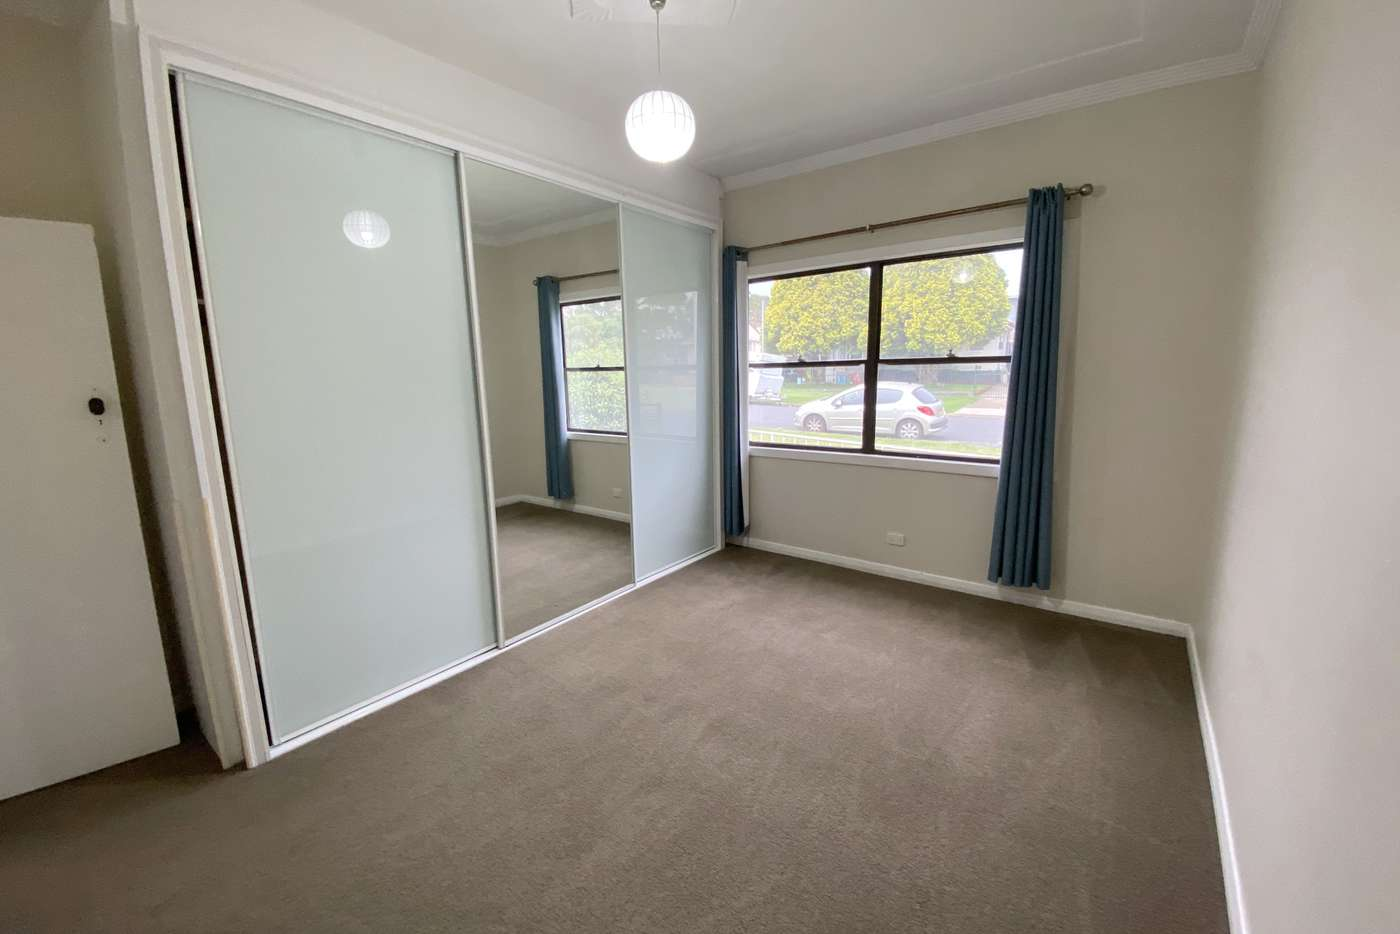 Fifth view of Homely house listing, 32 Lee Crescent, Birmingham Gardens NSW 2287